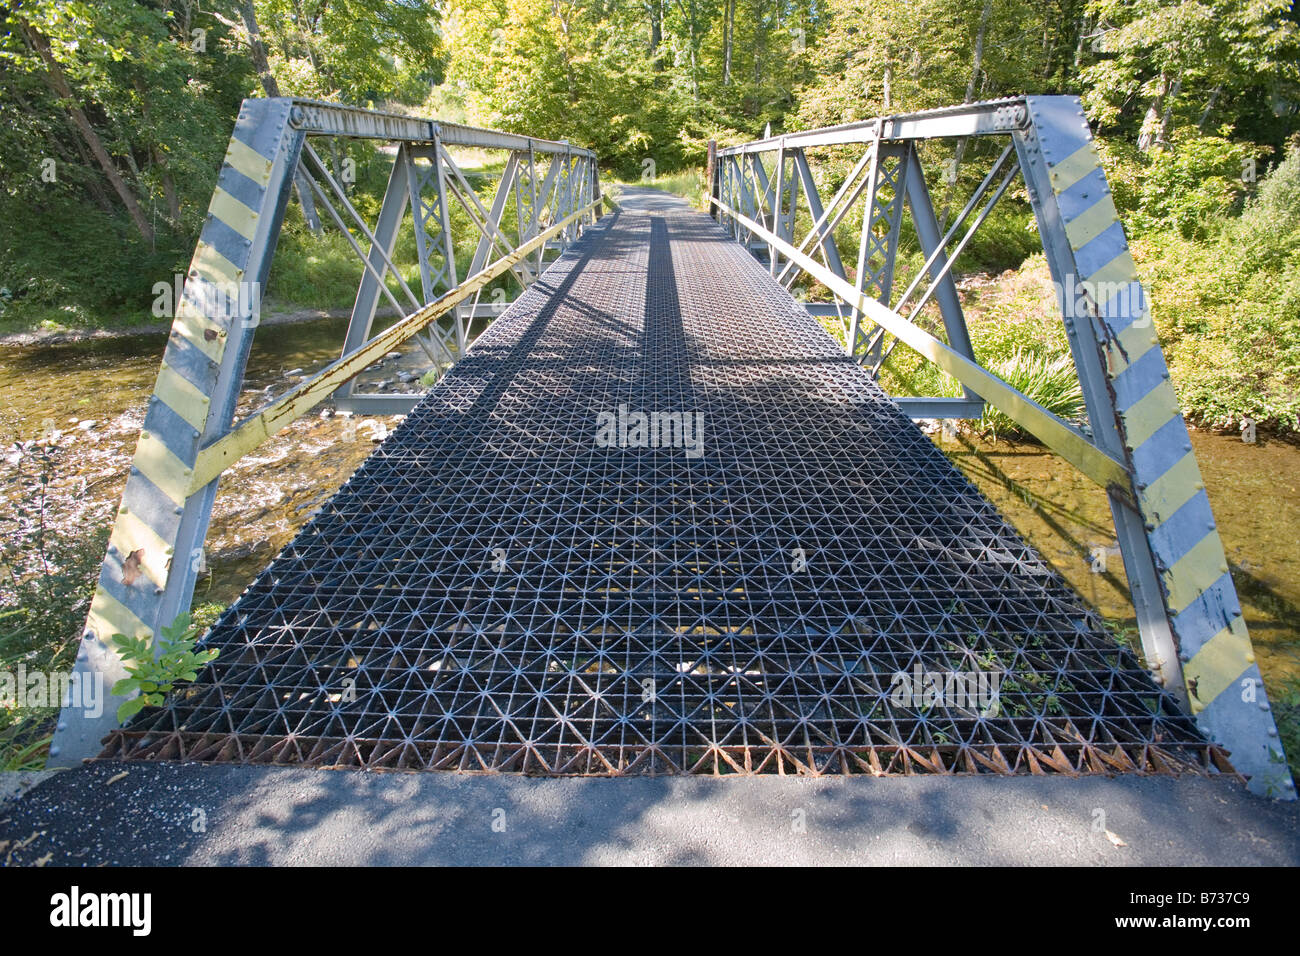 A lonely view of a country metal bridge with a flowing creek underneath the bridge. Stock Photo